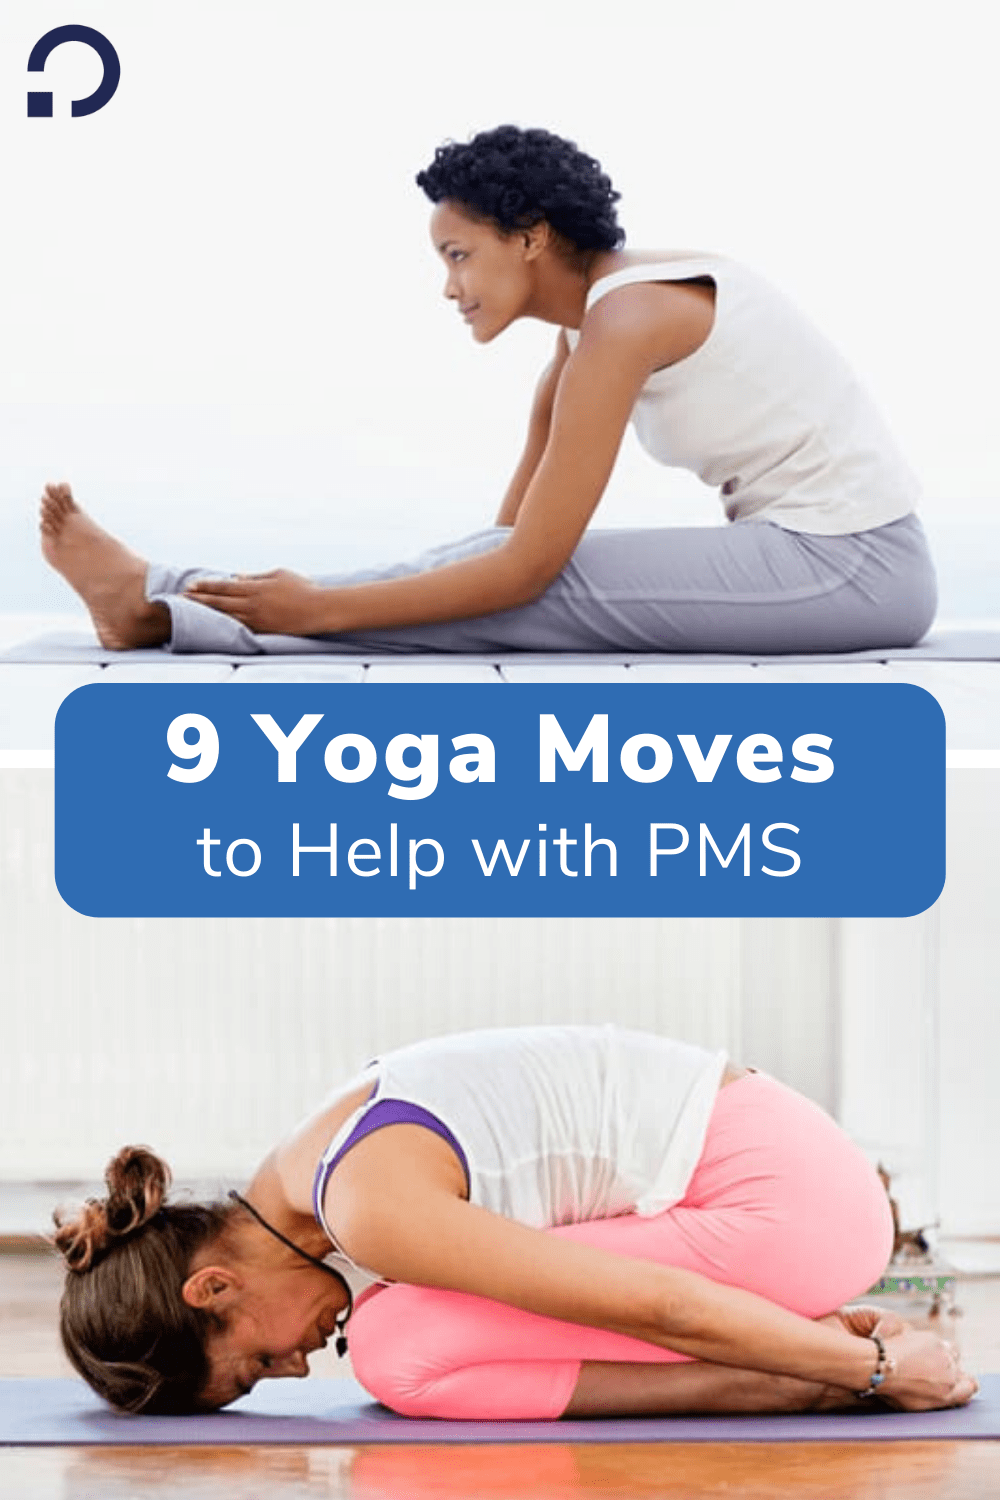 yoga for pms - pin image